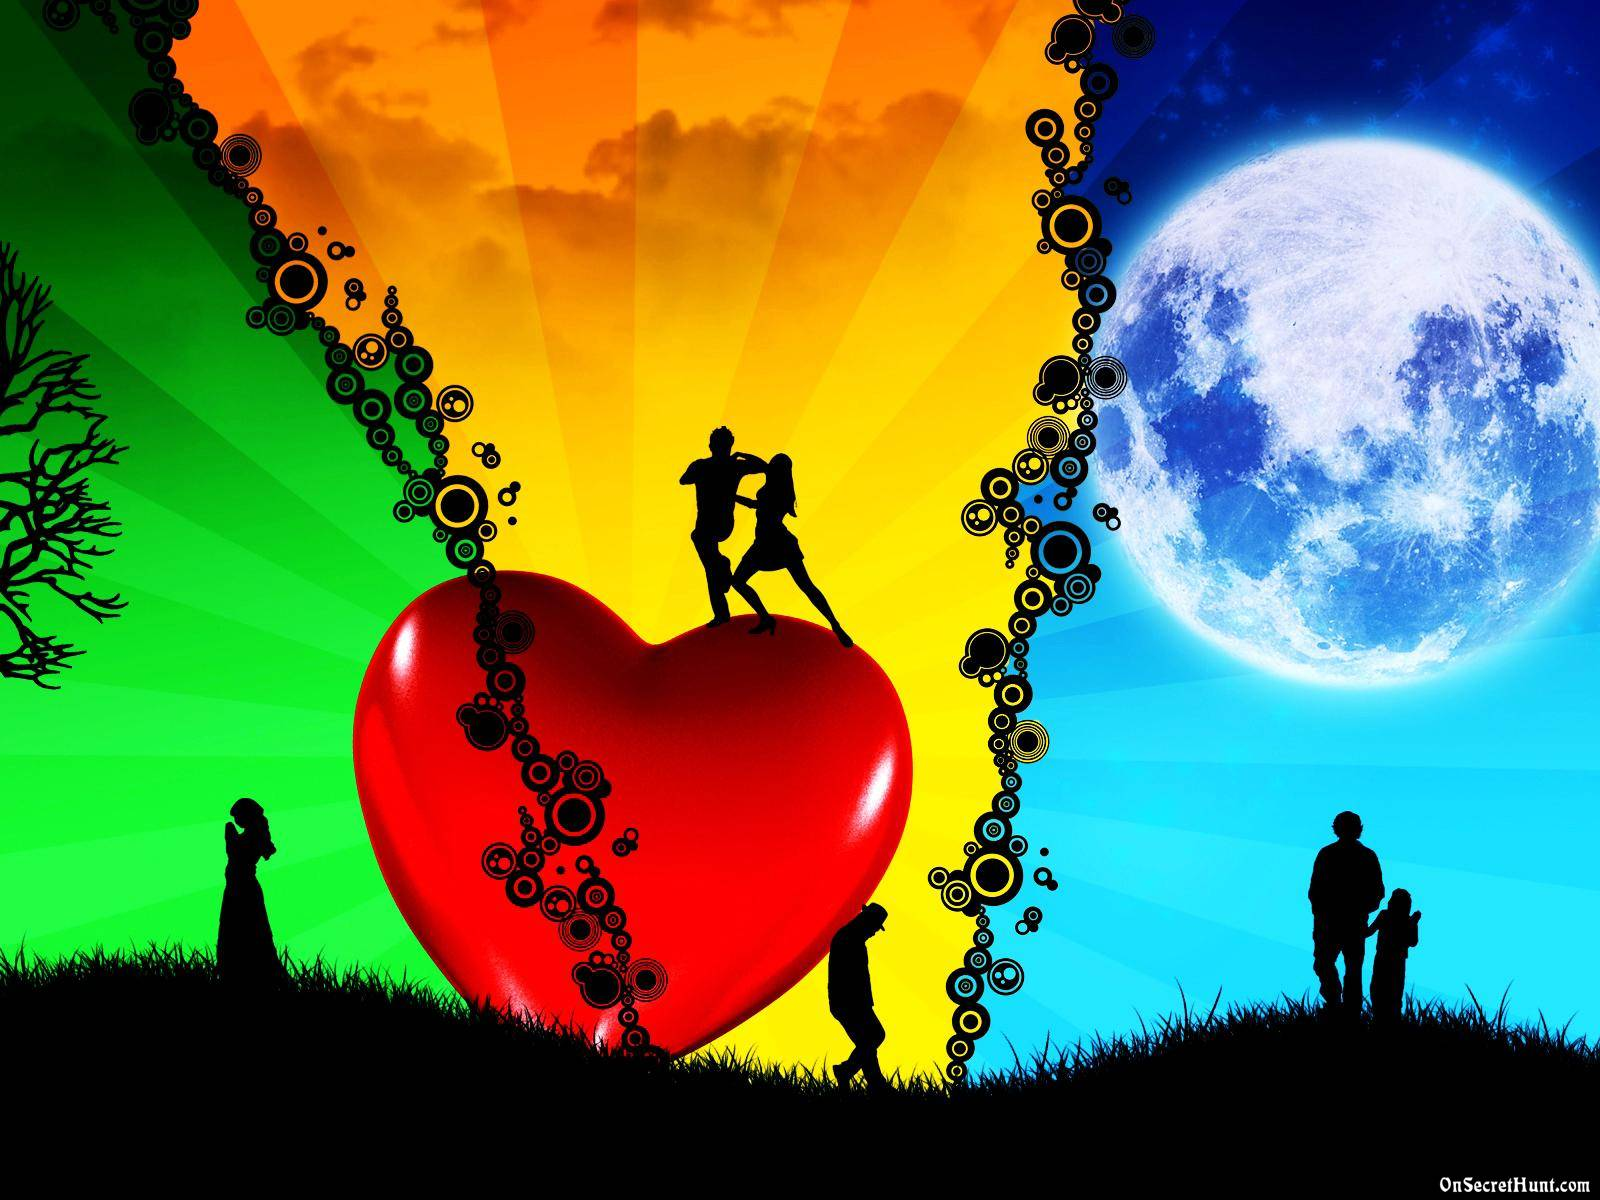 Love Wallpaper Hd Full Size : Love Wallpapers 3D - Wallpaper cave